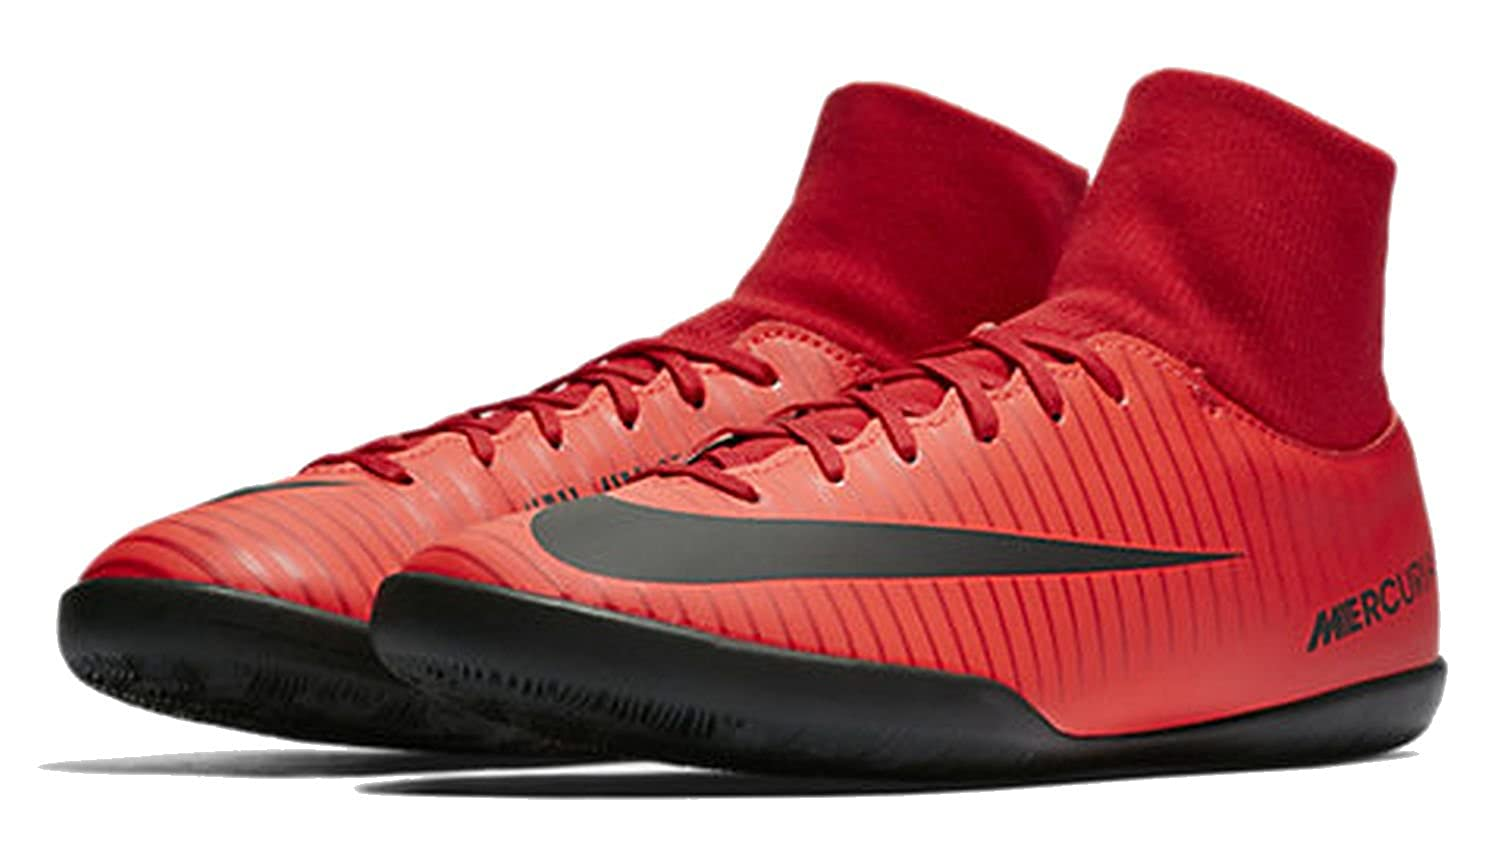 M US, University Red//Black 10 D Nike Mens Mercurial Victory VI Dyanamic Fit IC Indoor Soccer Shoes